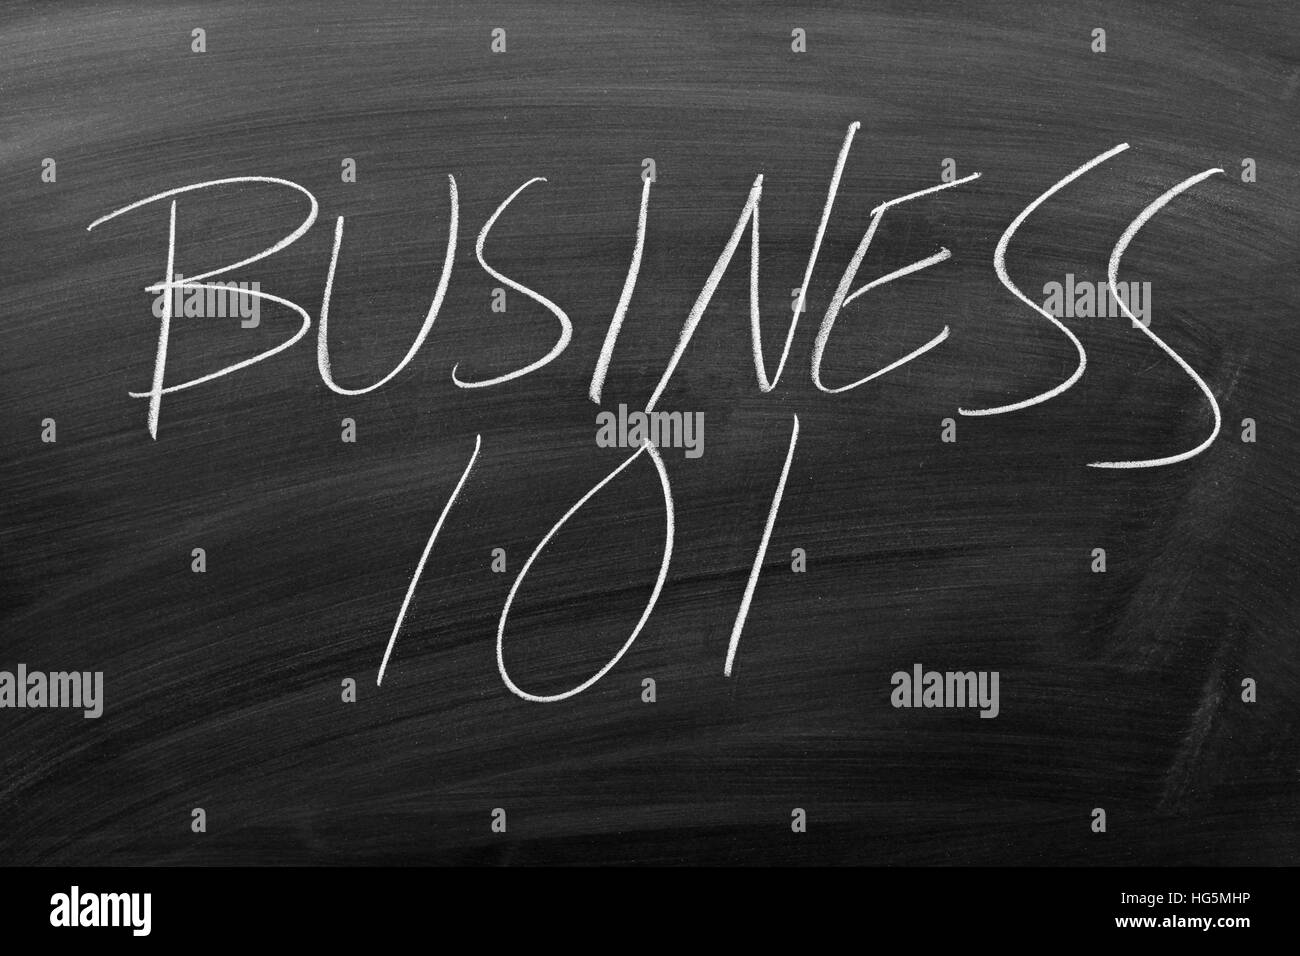 The words 'Business 101' on a blackboard in chalk - Stock Image